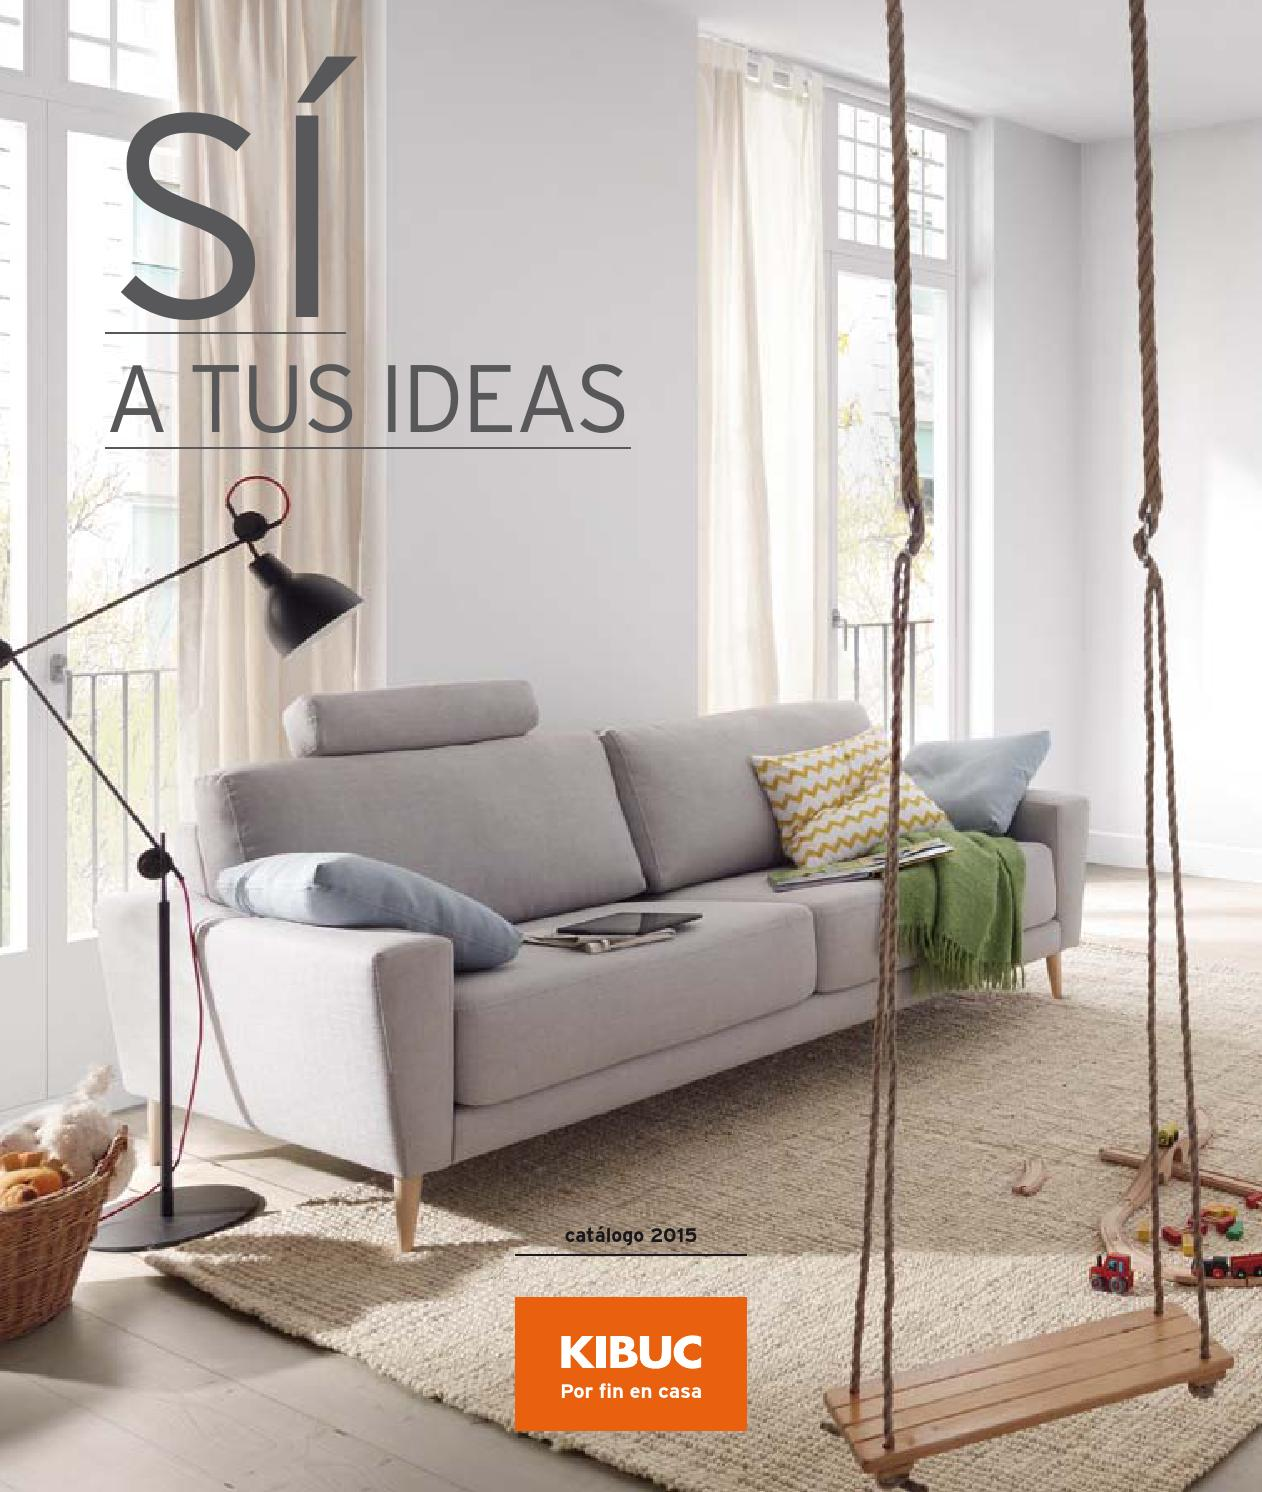 Catalogo 2014 15 by kibuc issuu for Muebles por catalogo